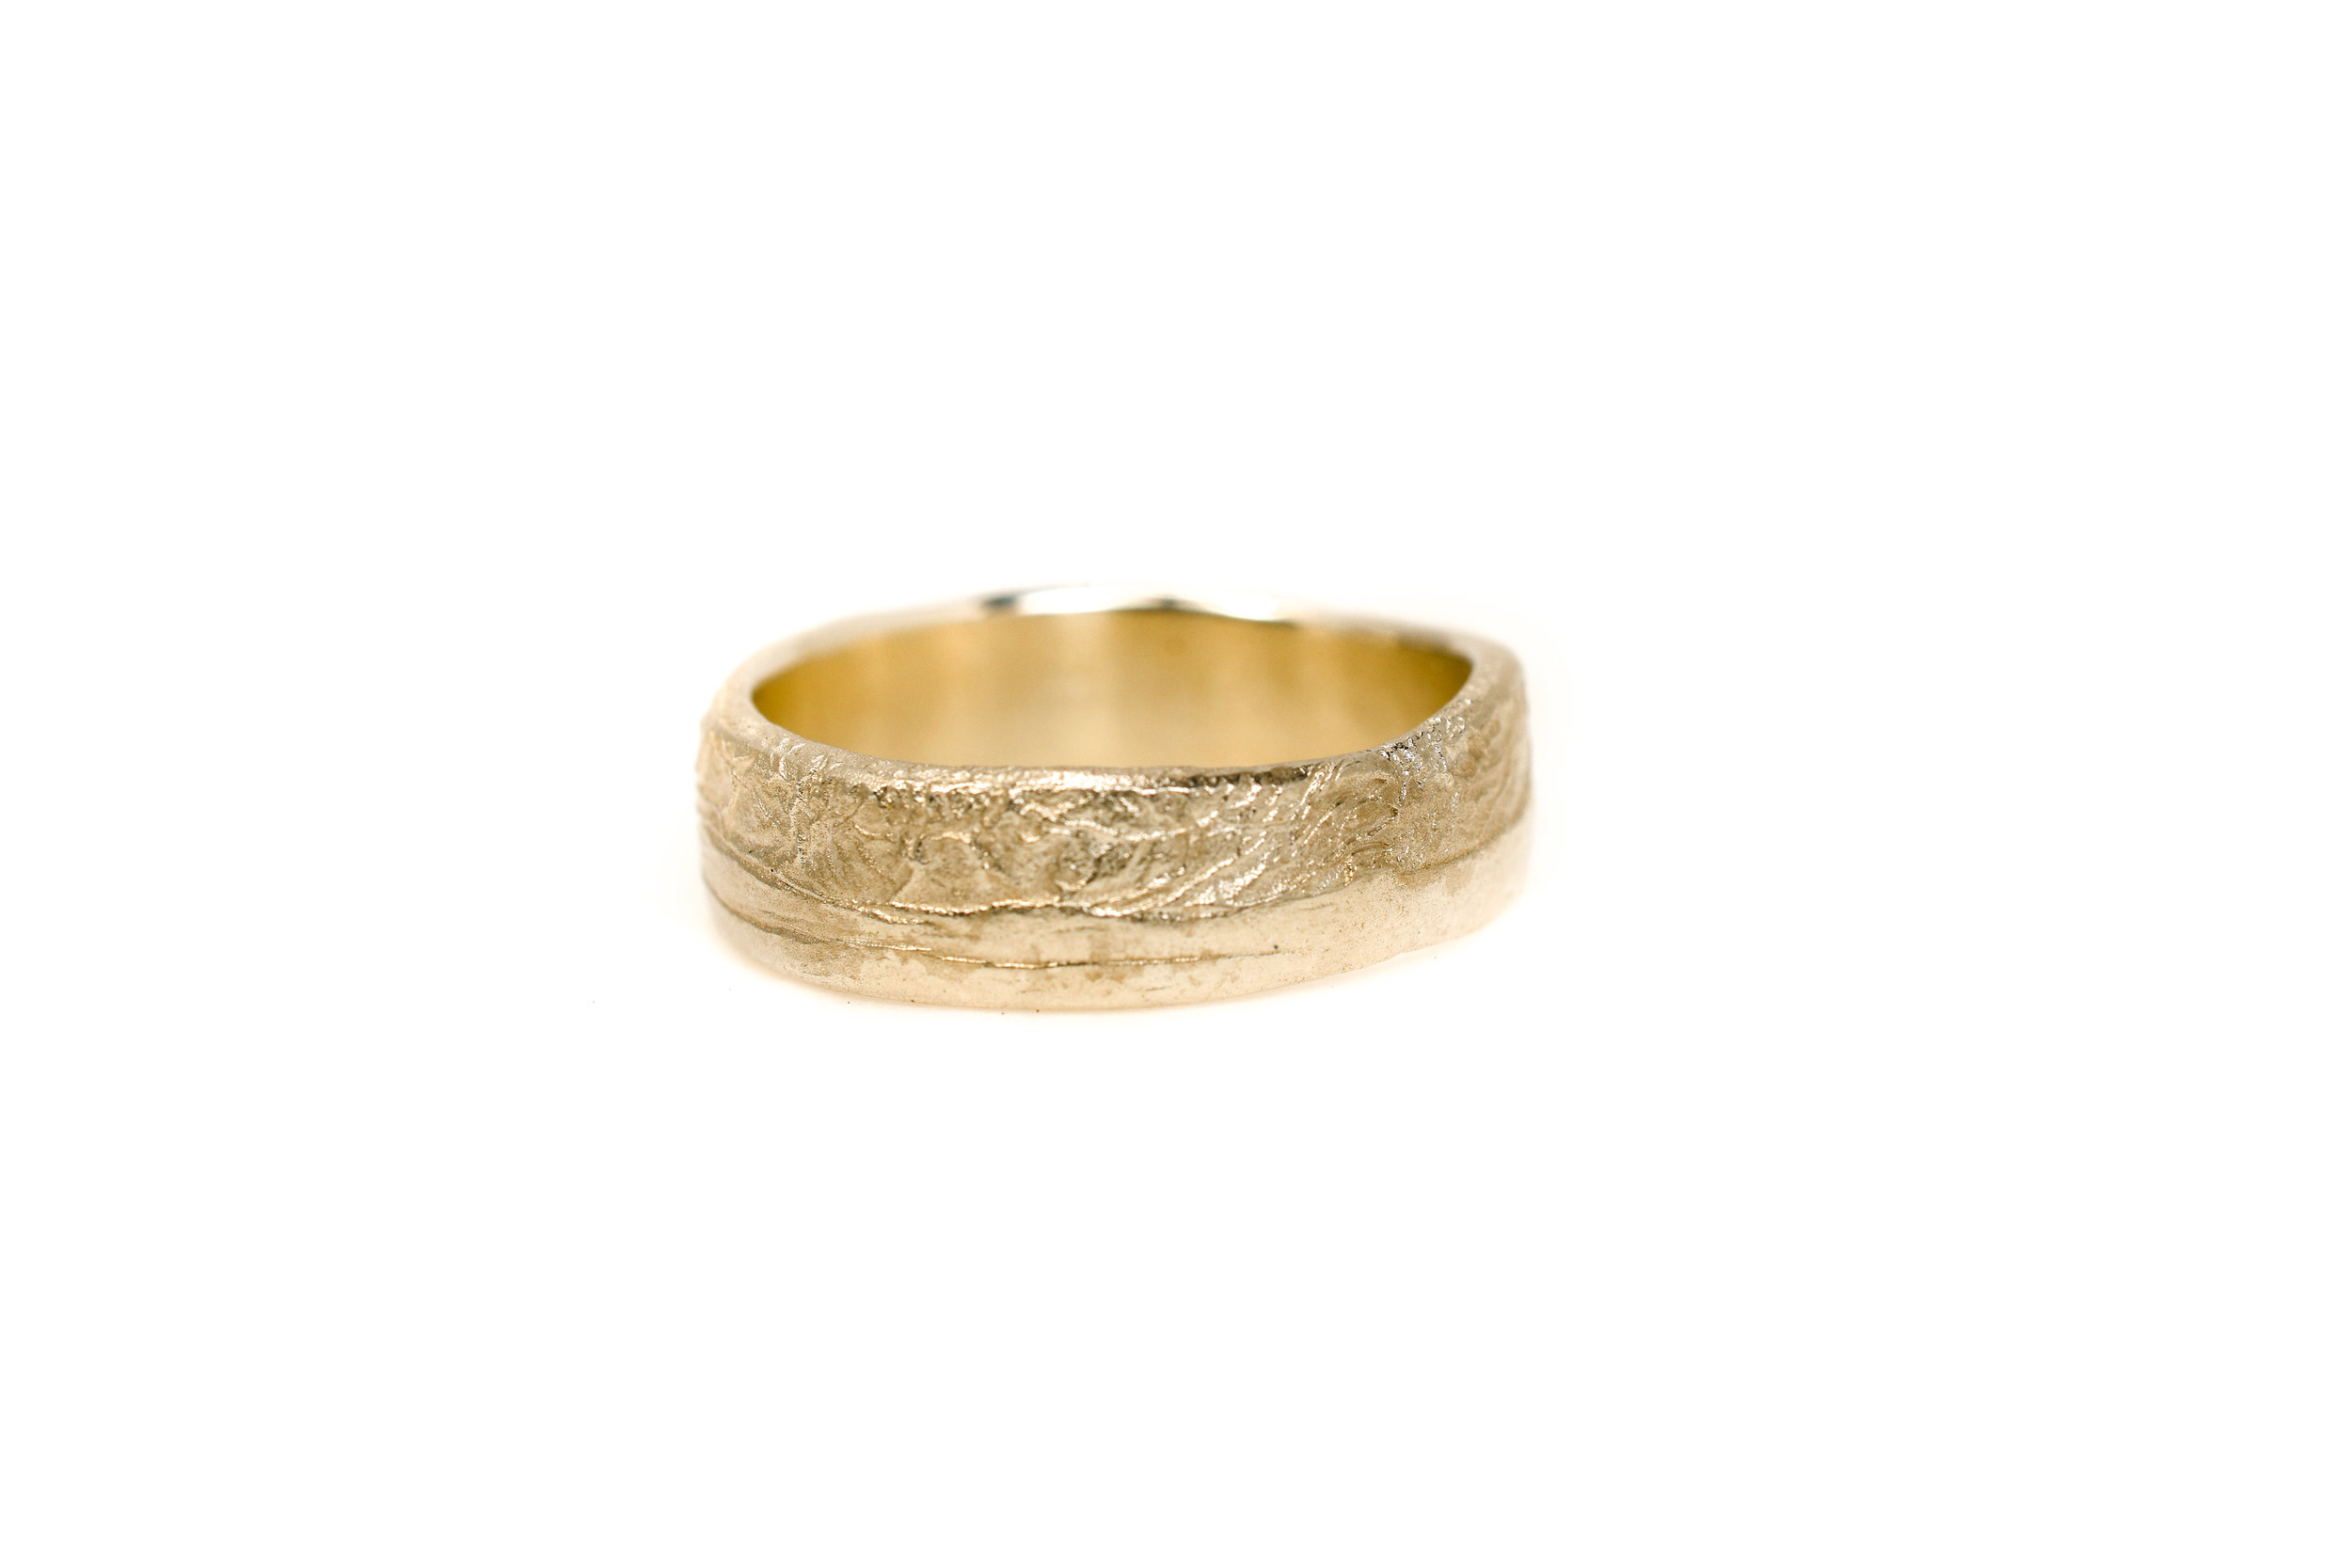 liesbethbusman-saagae-trouwringen-weddingrings--14 rose goud (1 van 1).jpg